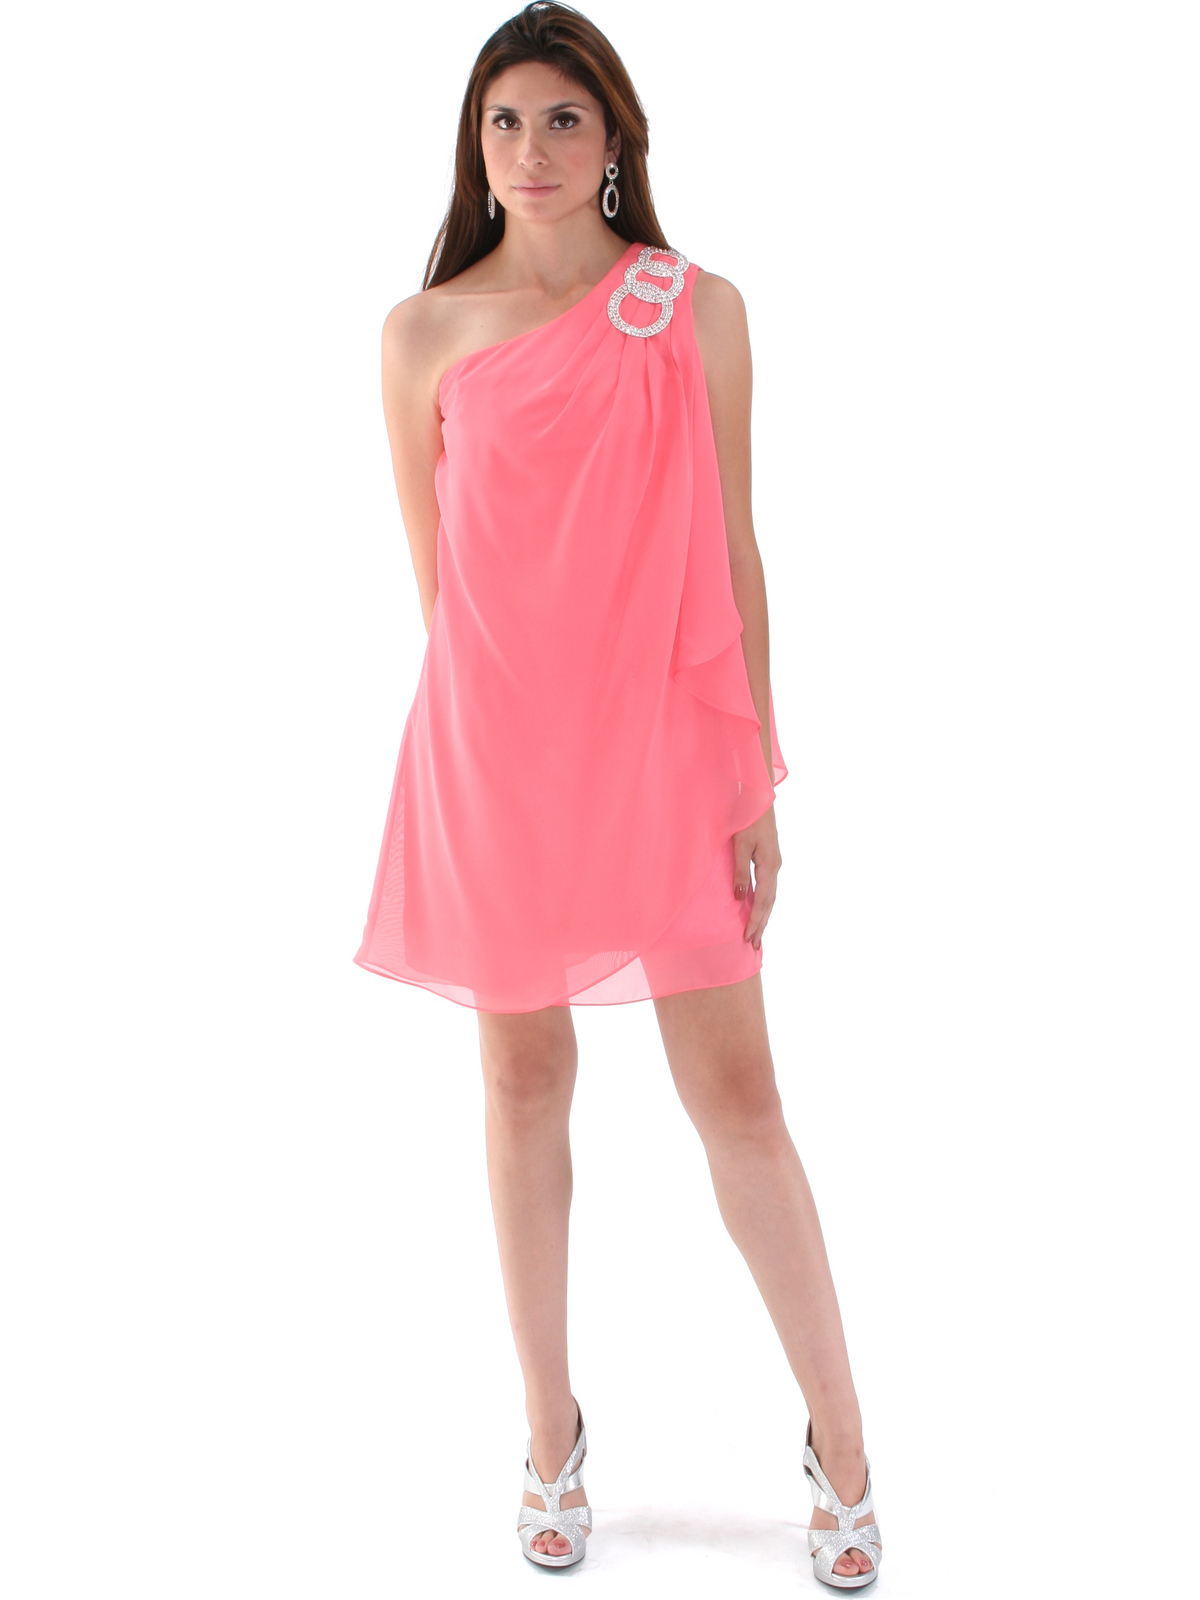 coral one shoulder chiffon cocktail dress sung boutique la